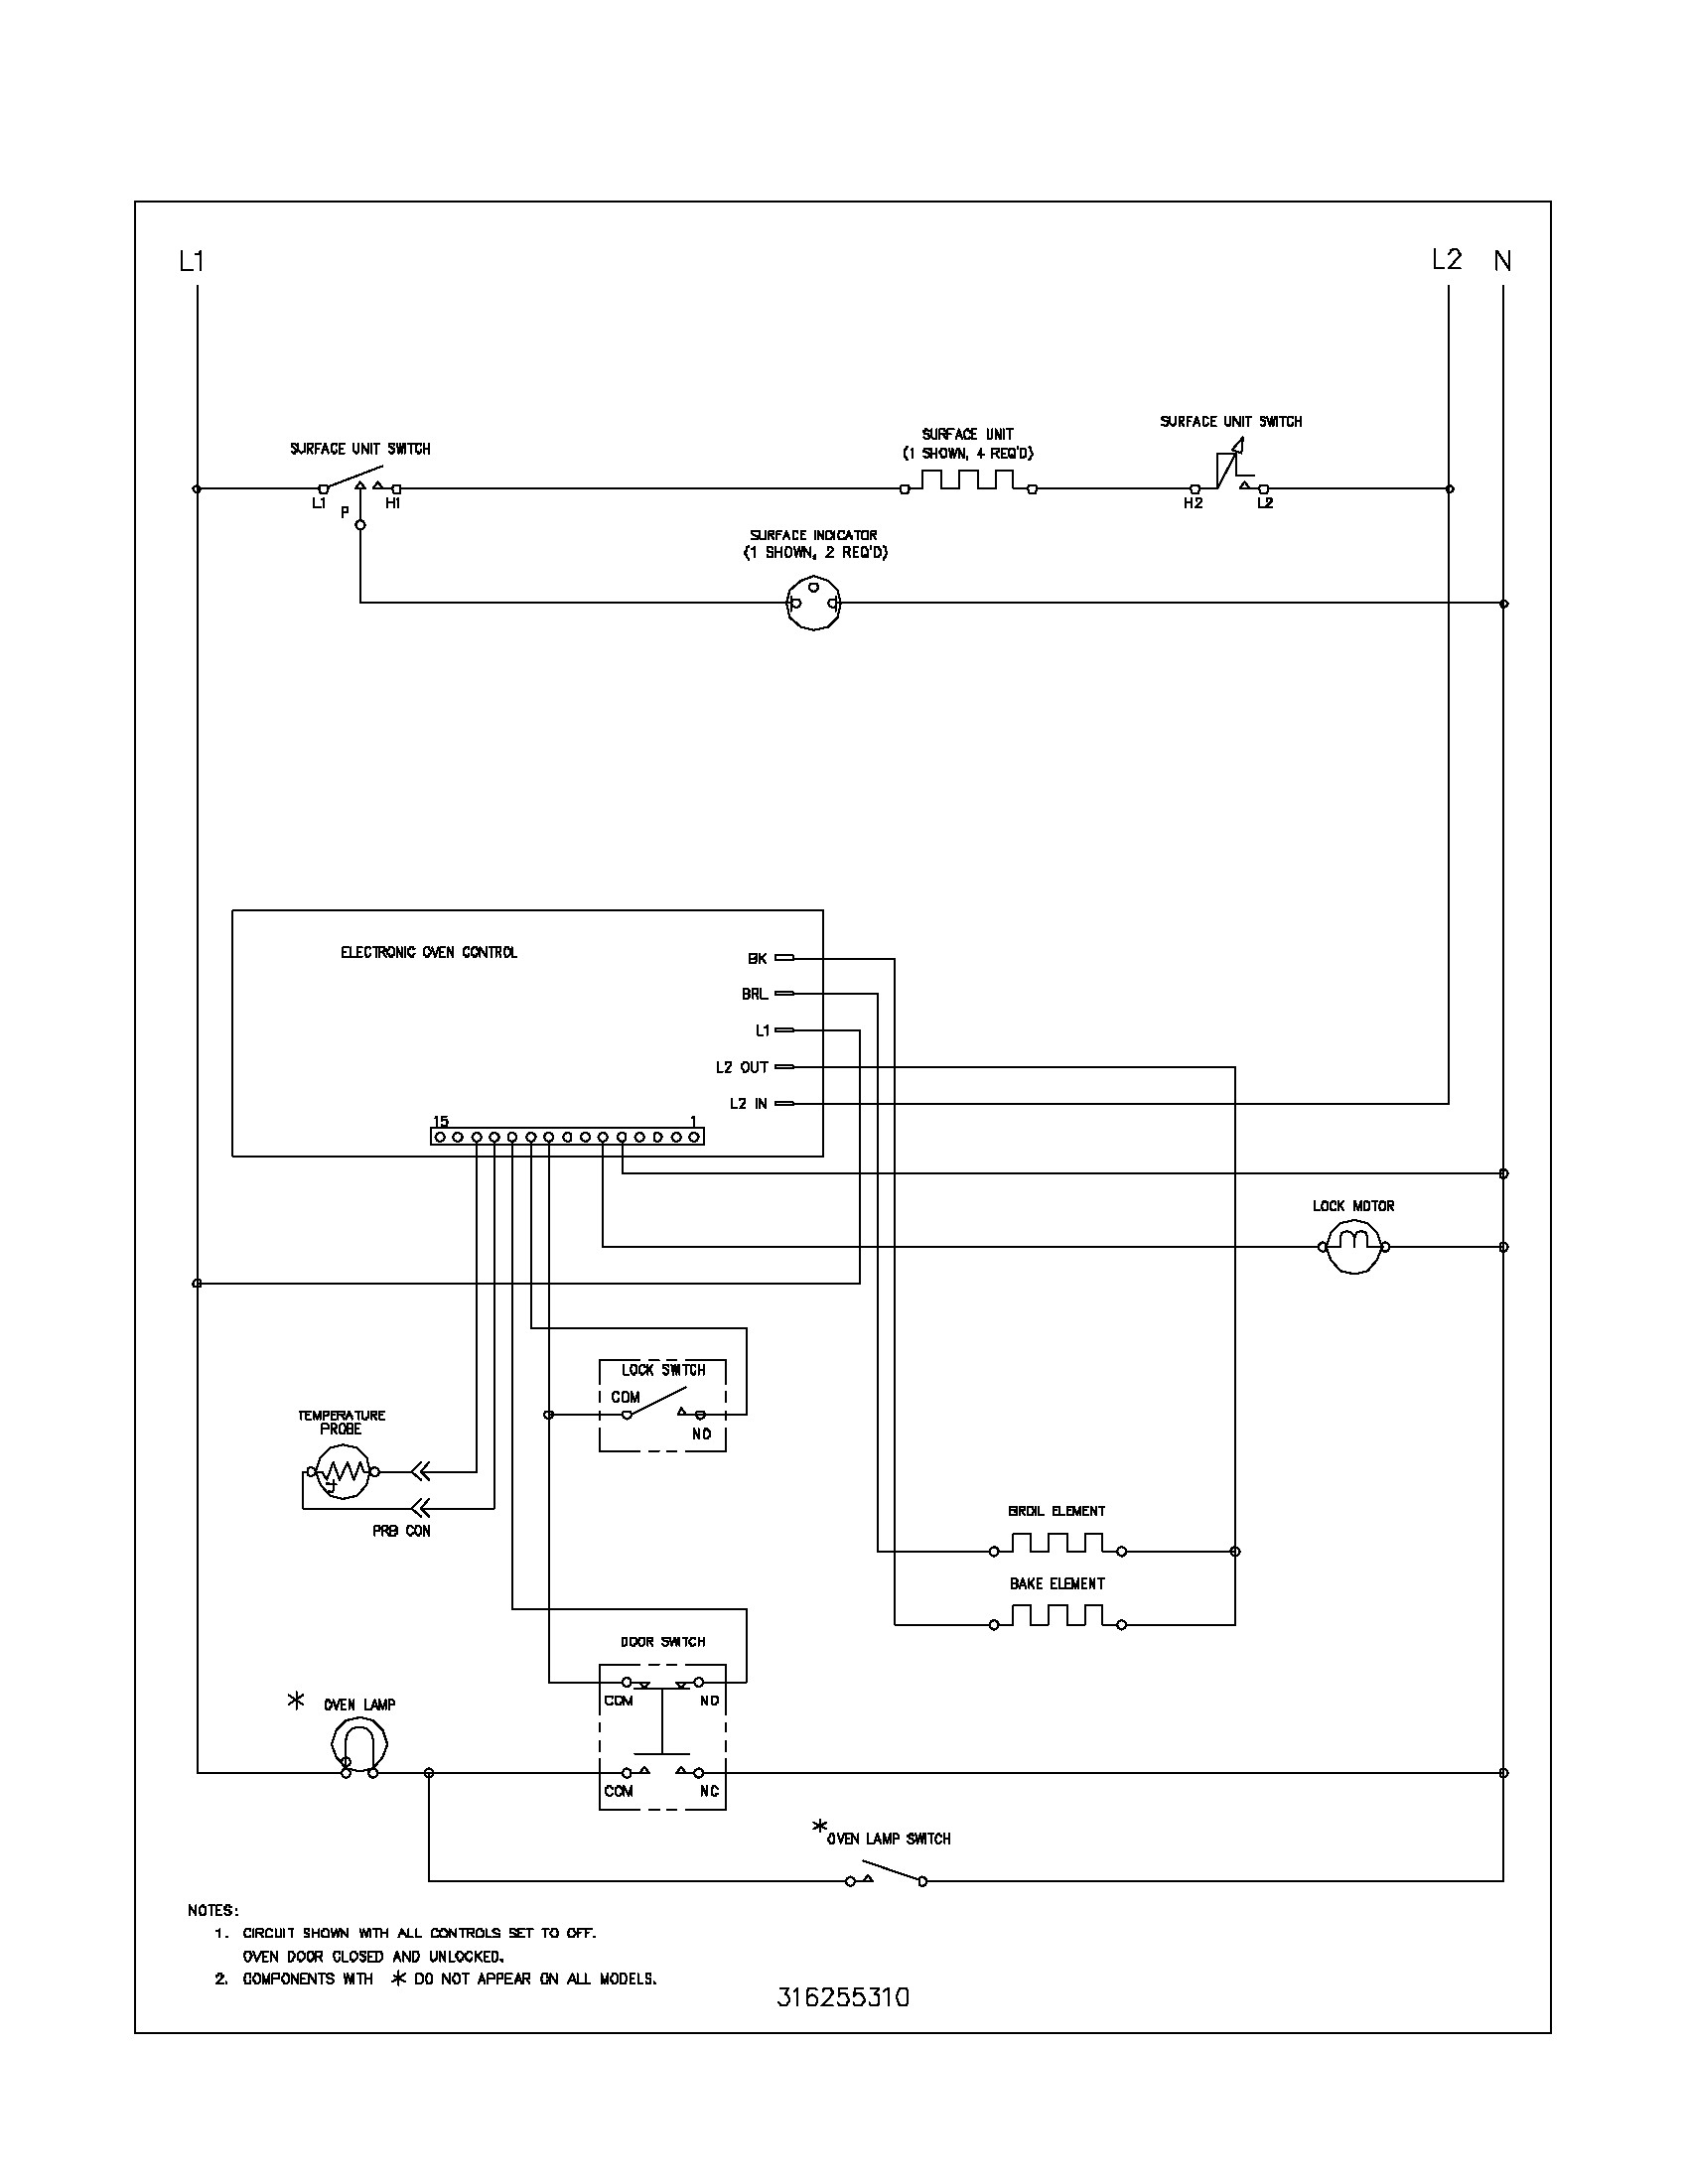 Schematic oven 5 wall wiring frigidaire reg75wl automotive block frigidaire oven wiring diagram 1956 wire center u2022 rh flrishfarm co frigidaire dishwasher wiring schematic frigidaire dryer wiring schematic swarovskicordoba Gallery